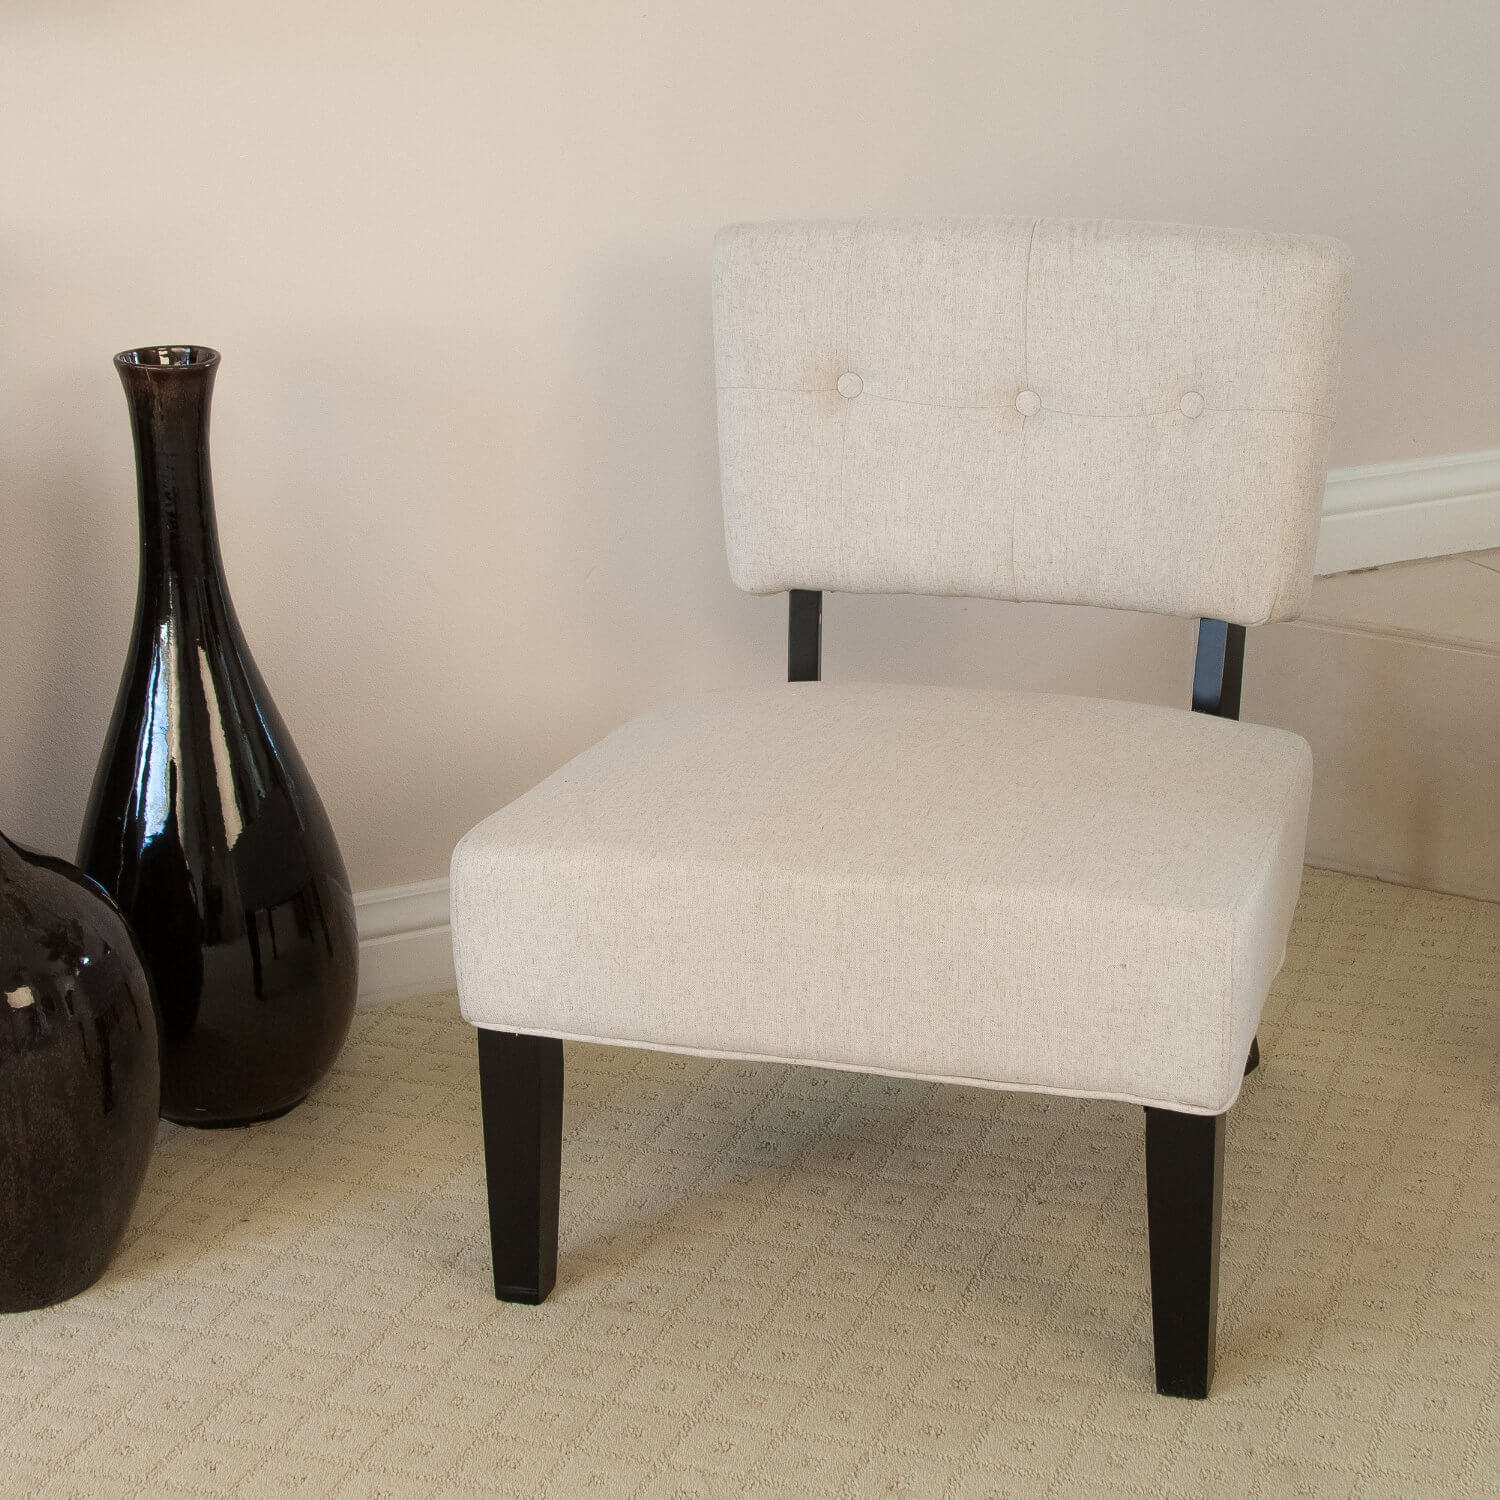 Exceptionnel This Is A Simple, Yet Elegant Accent Chair That Lightens Up A Darker Room  Motif